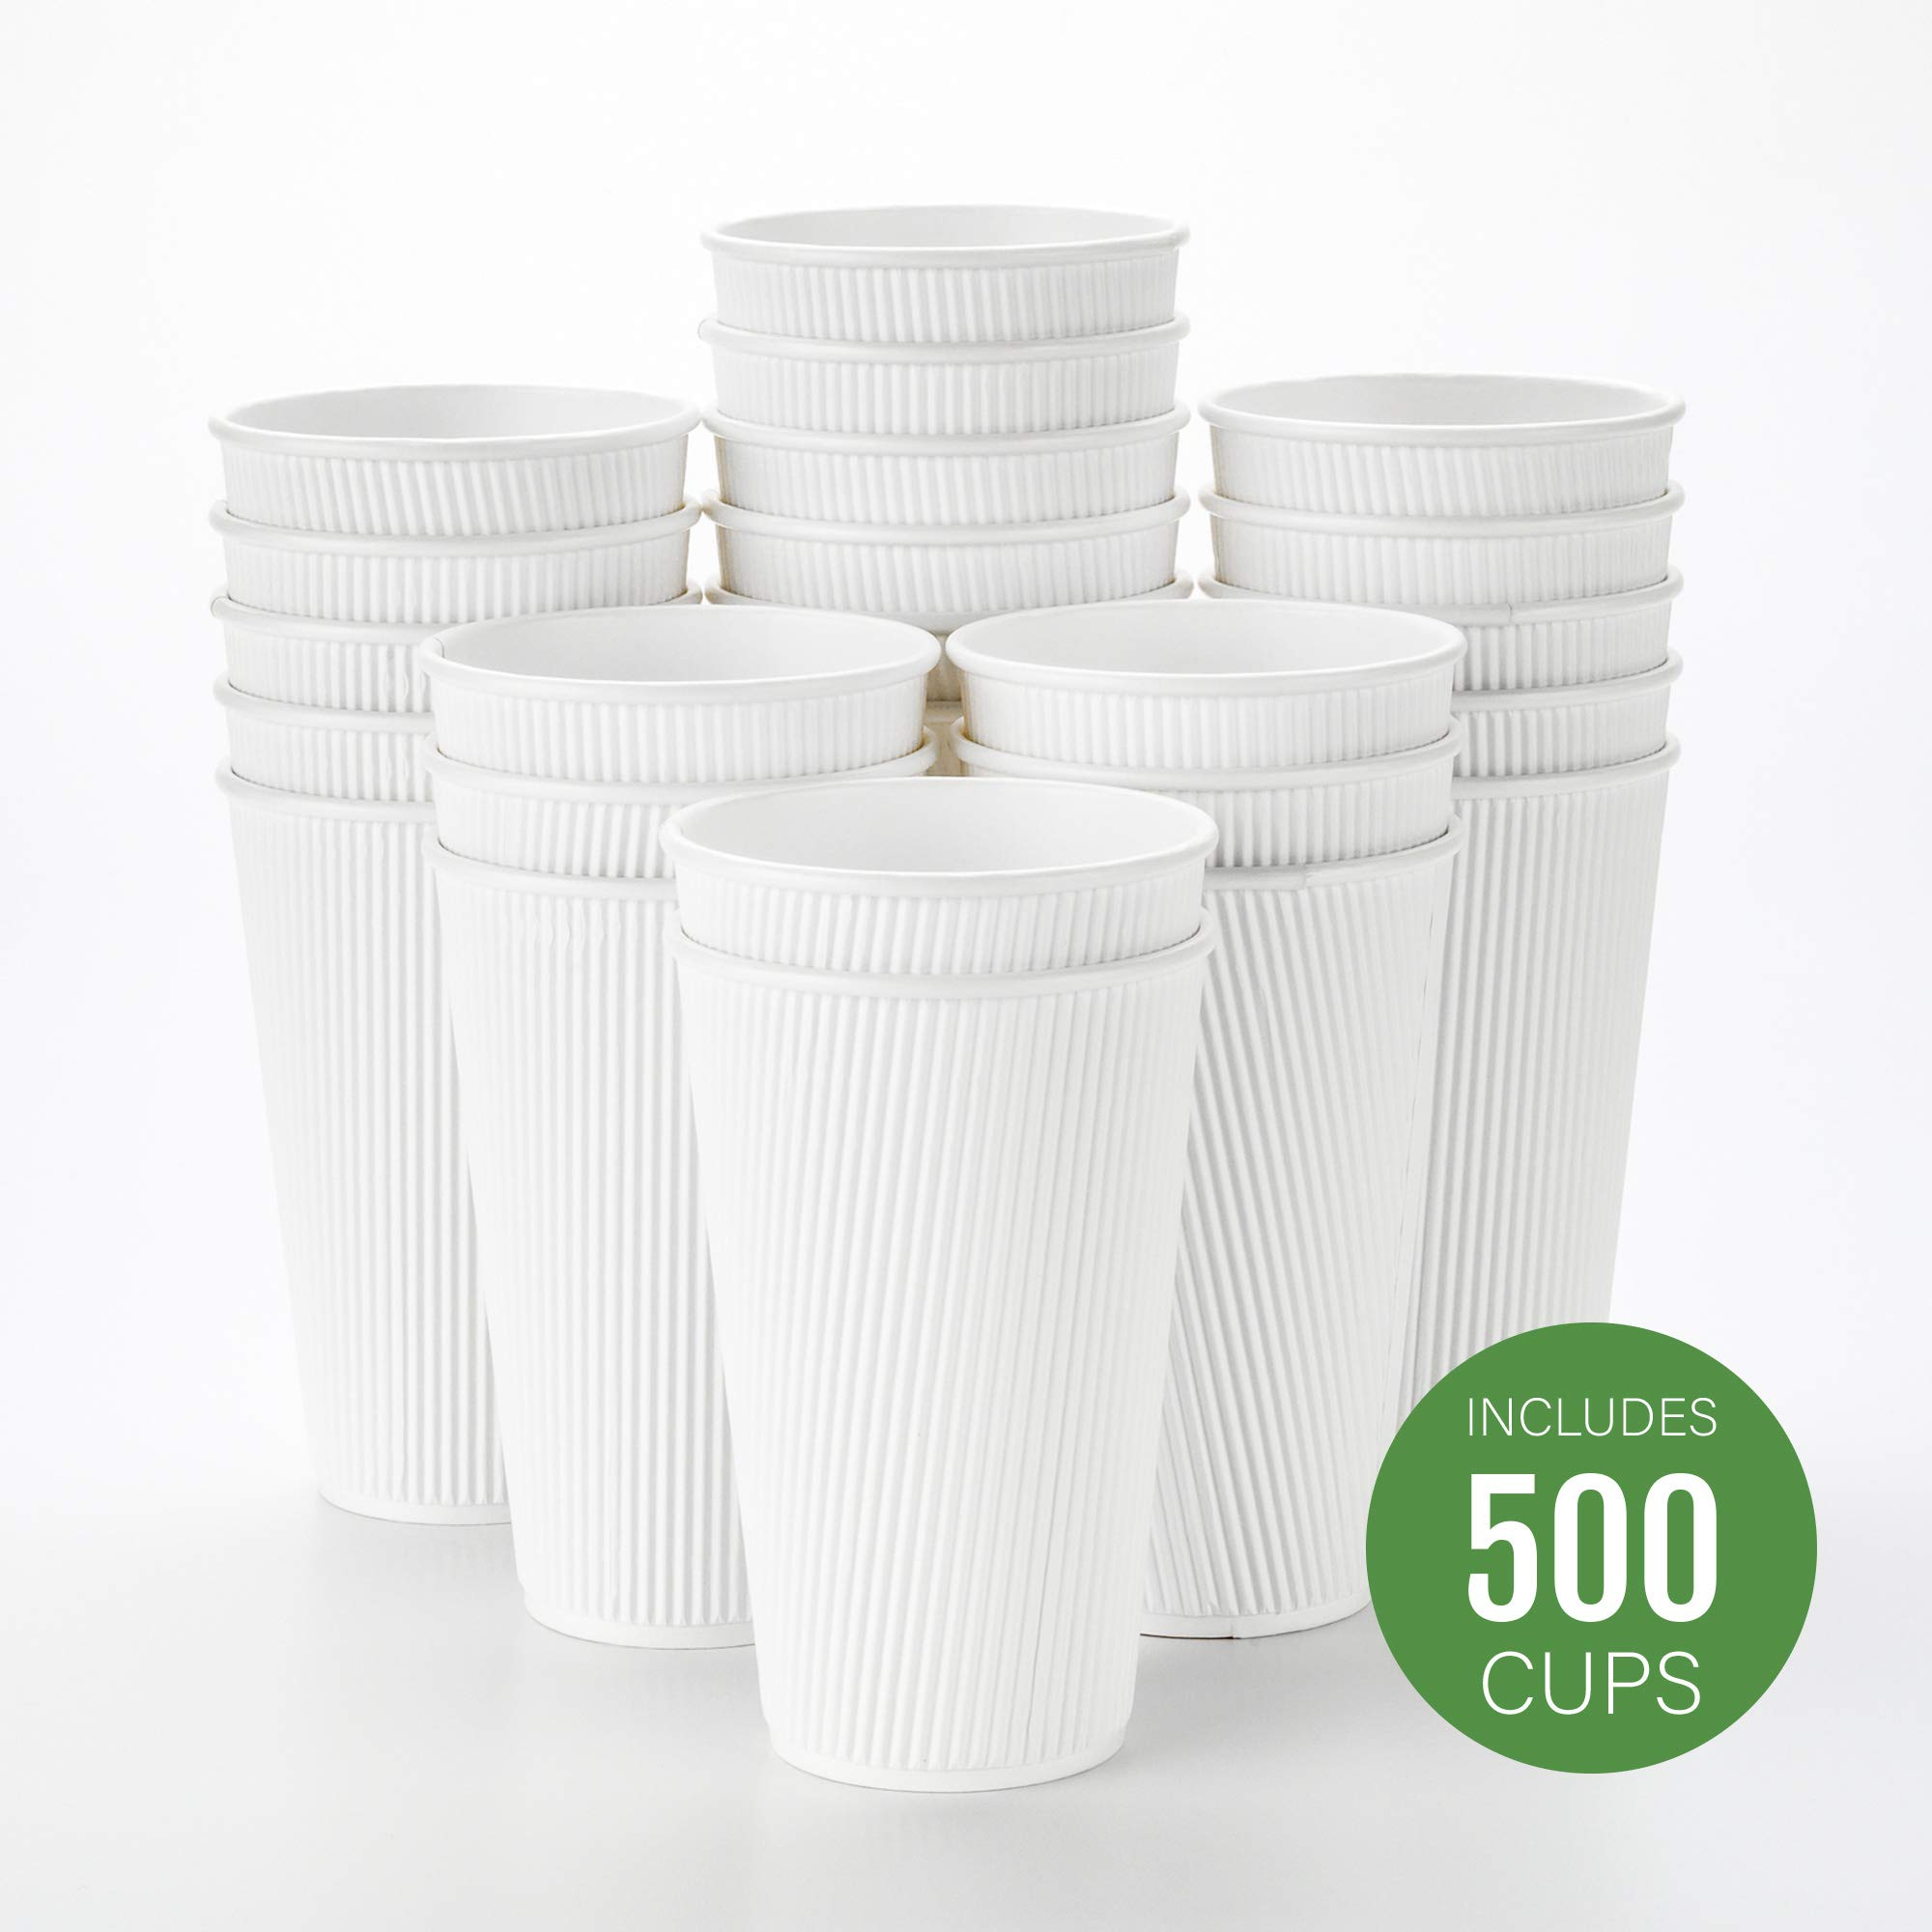 500-CT Disposable White 16-OZ Hot Beverage Cups with Ripple Wall Design: No Need for Sleeves - Perfect for Cafes - Eco-Friendly Recyclable Paper - Insulated - Wholesale Takeout Coffee Cup